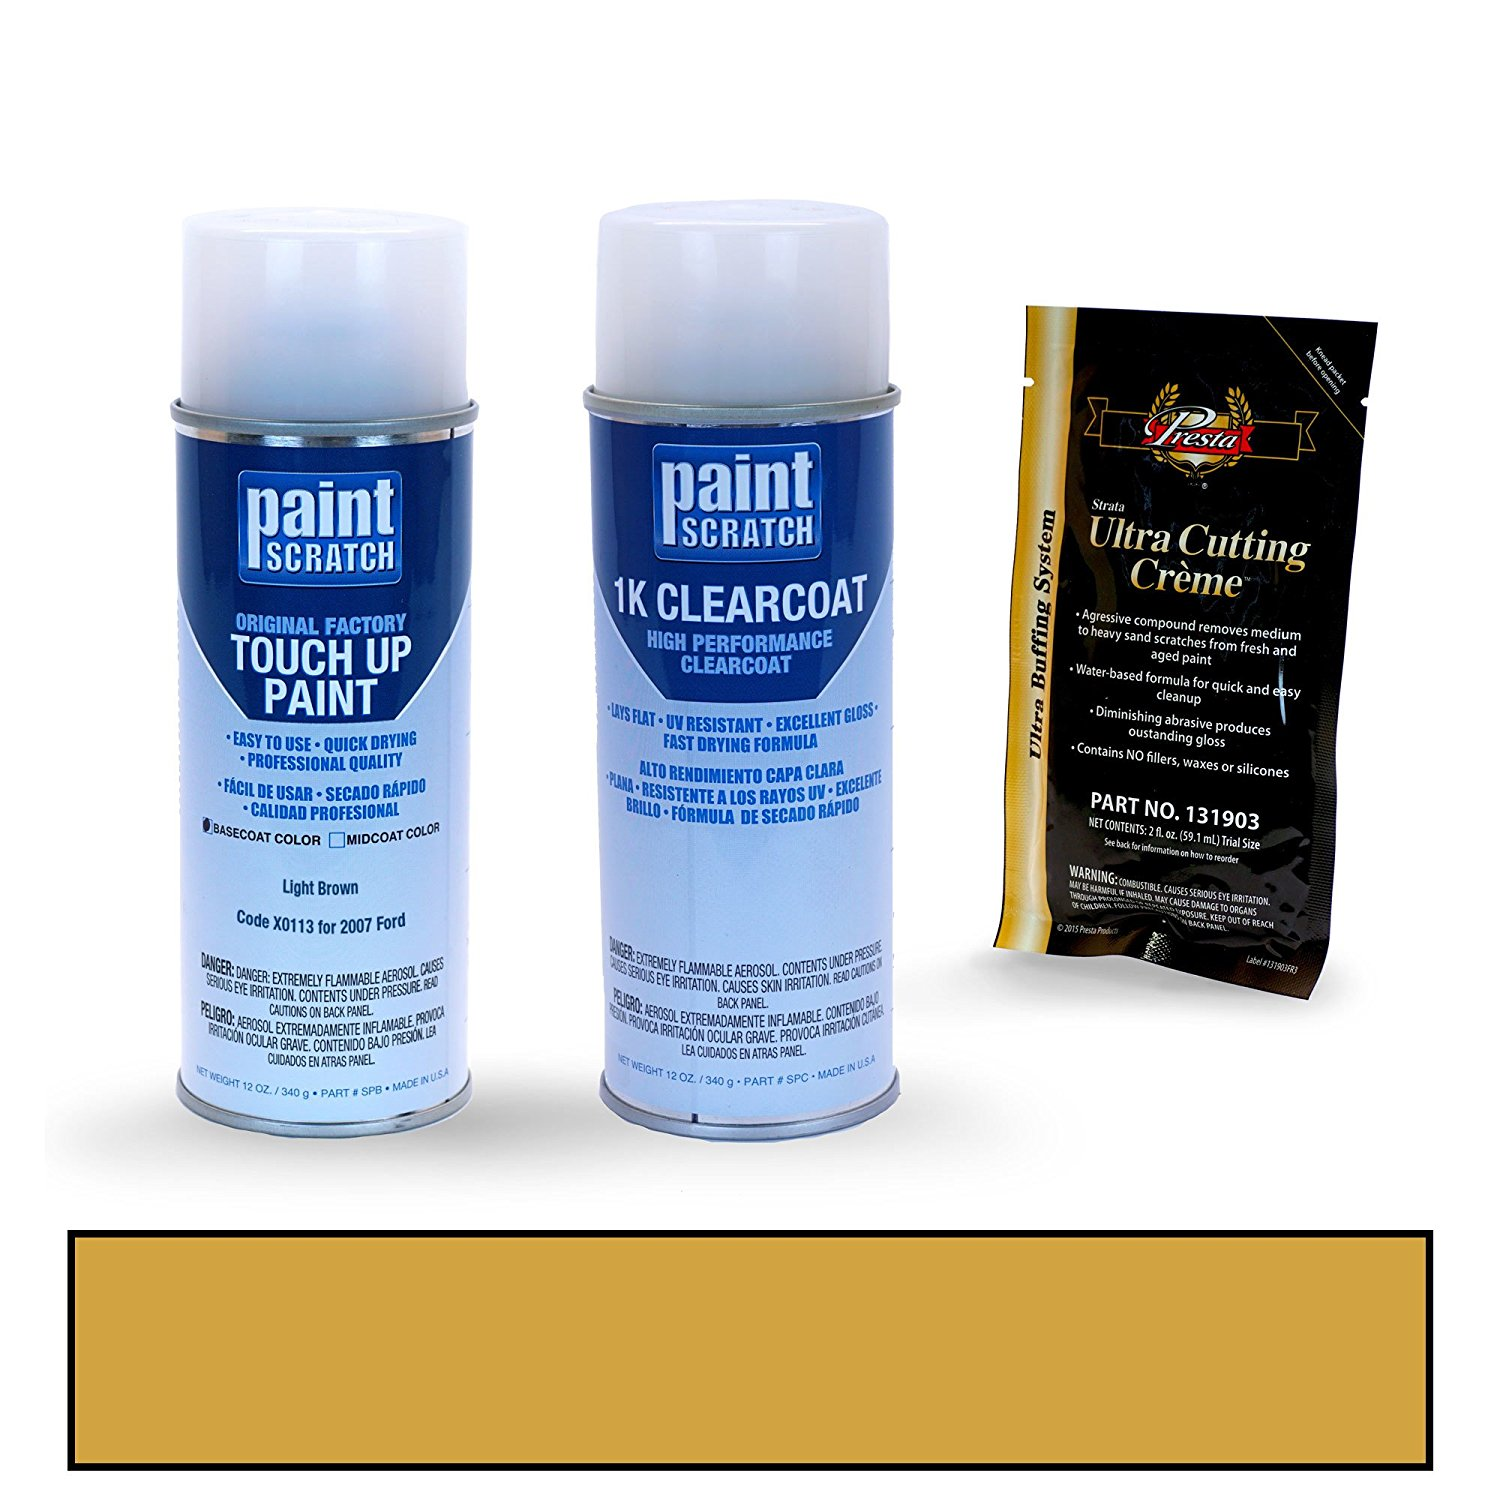 Get Quotations 2007 Ford F Series Light Brown X0113 Touch Up Paint Spray Can Kit By Paintscratch